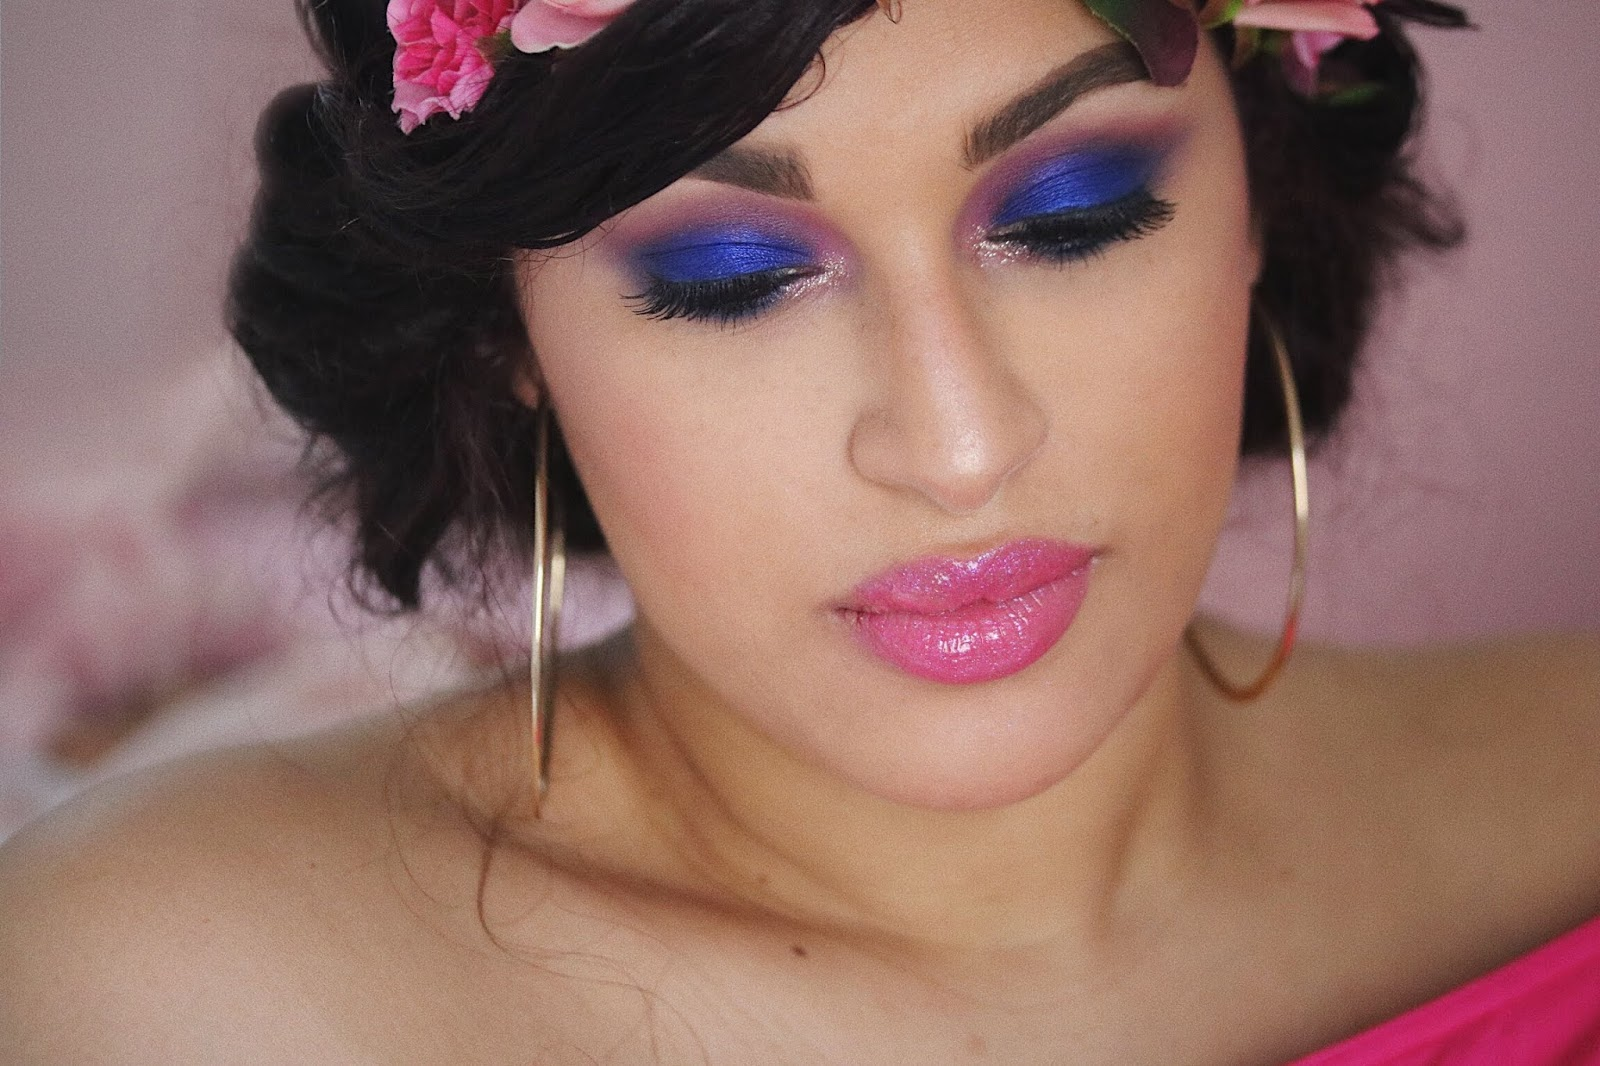 FLORAL REALNESS , MAC COSMETIQUES , MACCOSMETICS ,MAC , PATRICK STARRR , ME SO CHIC , ROSEMADEMOISELLE ,ROSE MADEMOISELLE , REVUE , AVIS ,SWATCH , BLOG BEAUTÉ , PARIS ,MACCOSMETICSFRANCE,